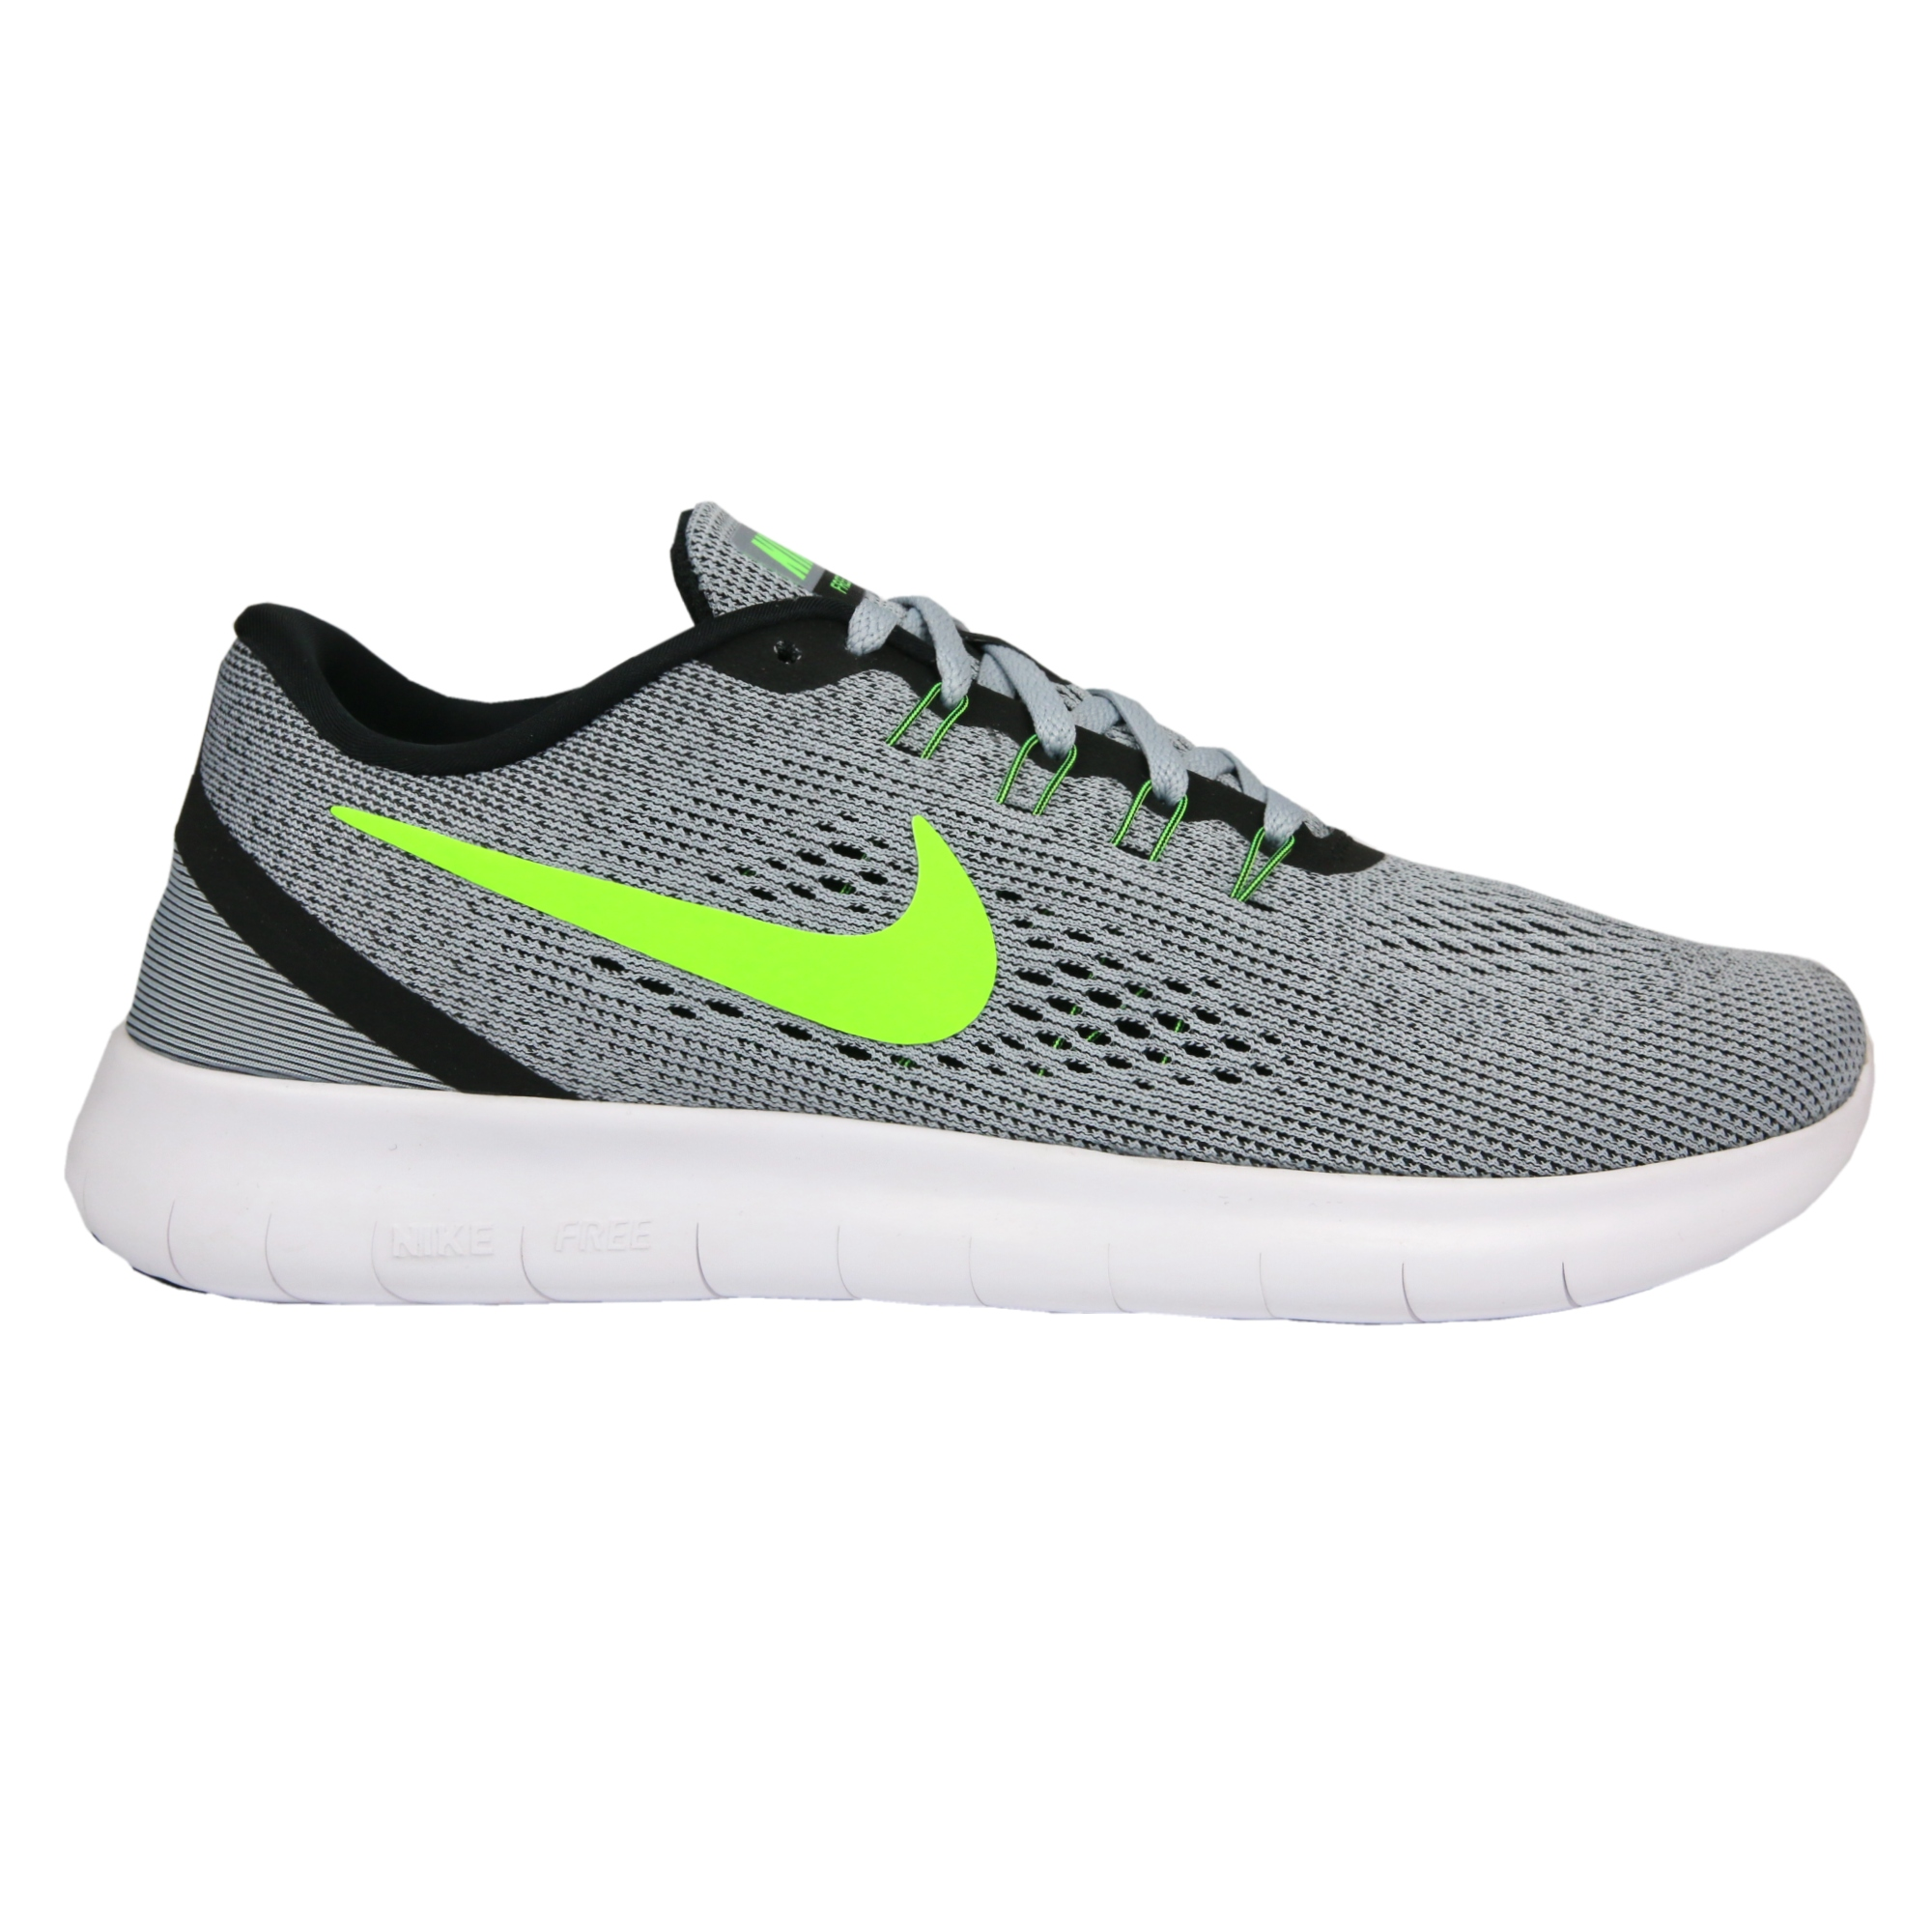 nike free rn run schuhe laufschuhe running fitness turnschuhe sneaker herren ebay. Black Bedroom Furniture Sets. Home Design Ideas